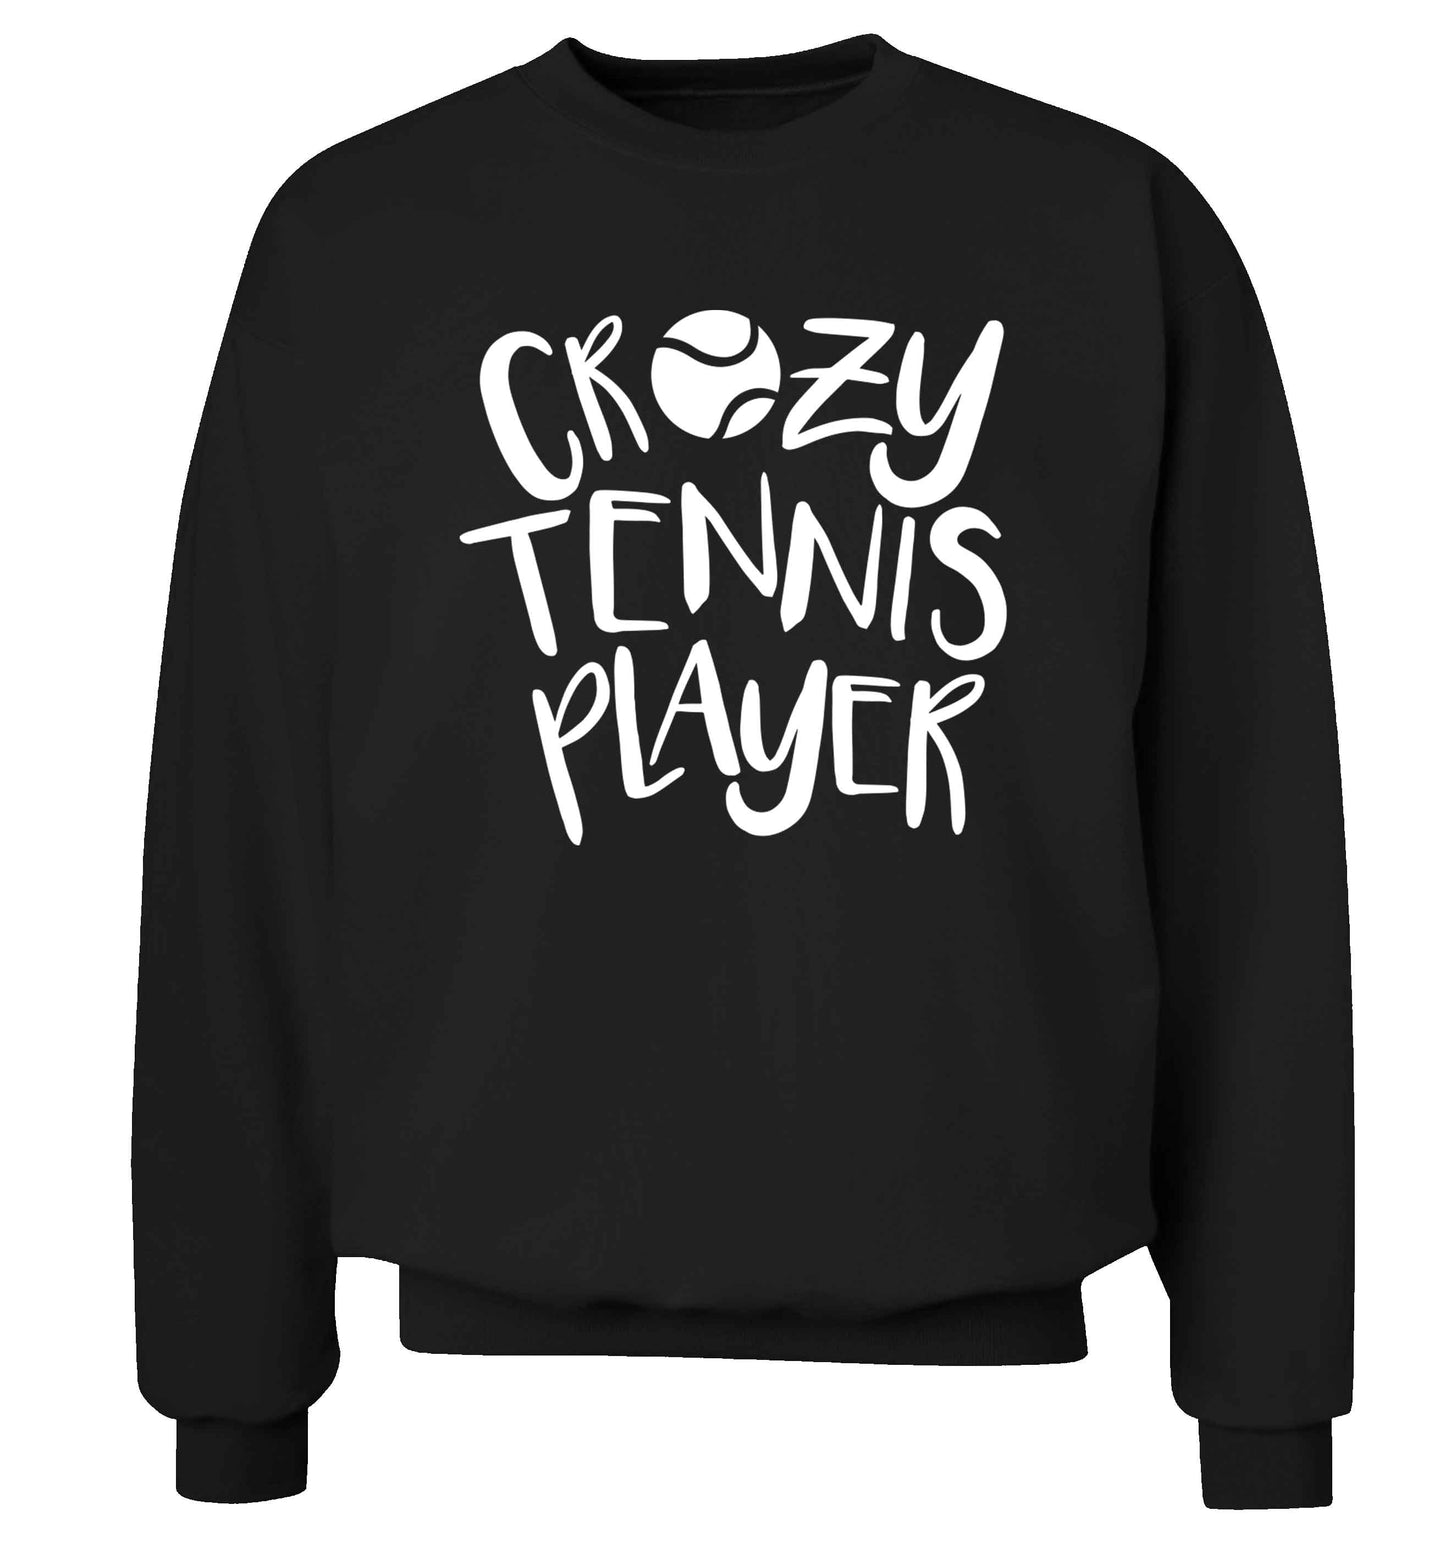 Crazy tennis player Adult's unisex black Sweater 2XL